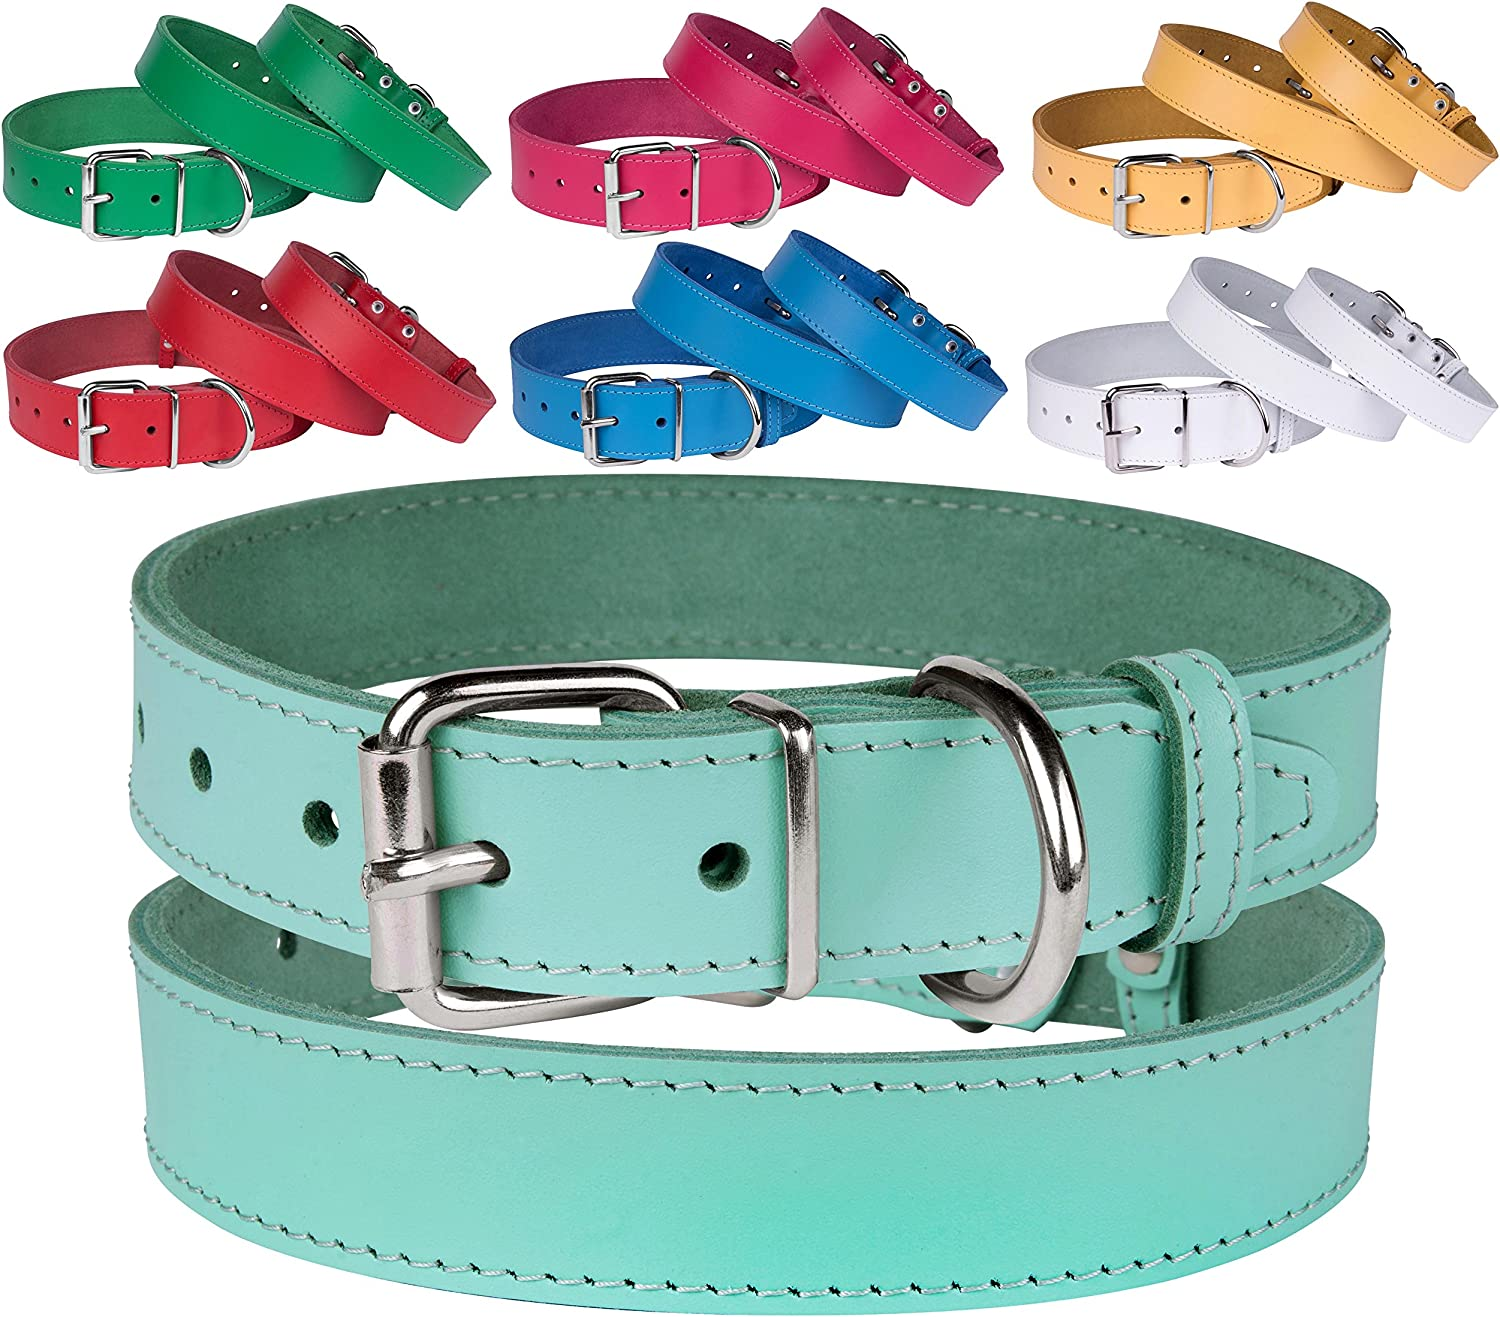 BronzeDog Genuine Leather Dog Collar Puppy Pet Collar for Dogs Small Medium Large Pink Red bluee Green Turquoise White Yellow (Neck Size 17   18 , Turquoise)